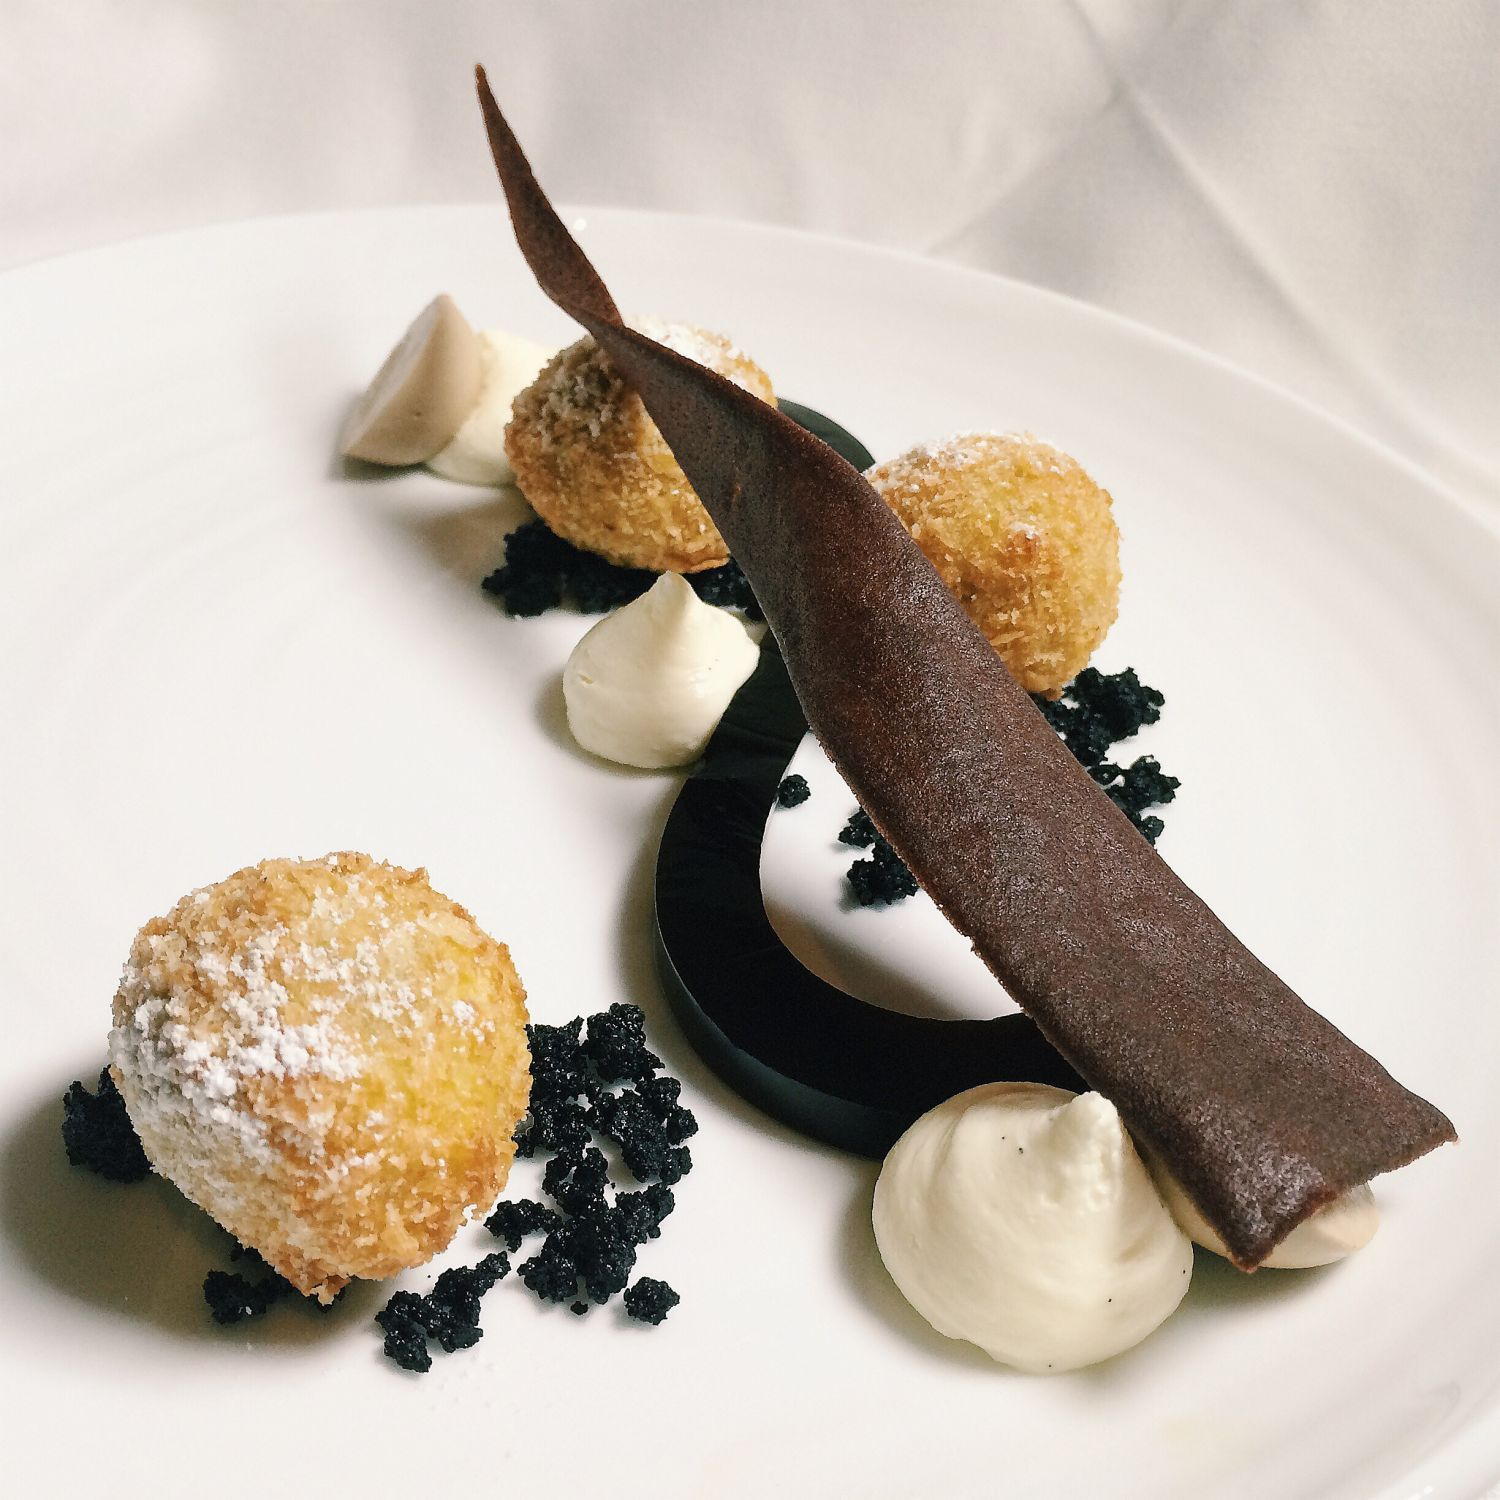 Chocolate Croquette - The Disgruntled Chef